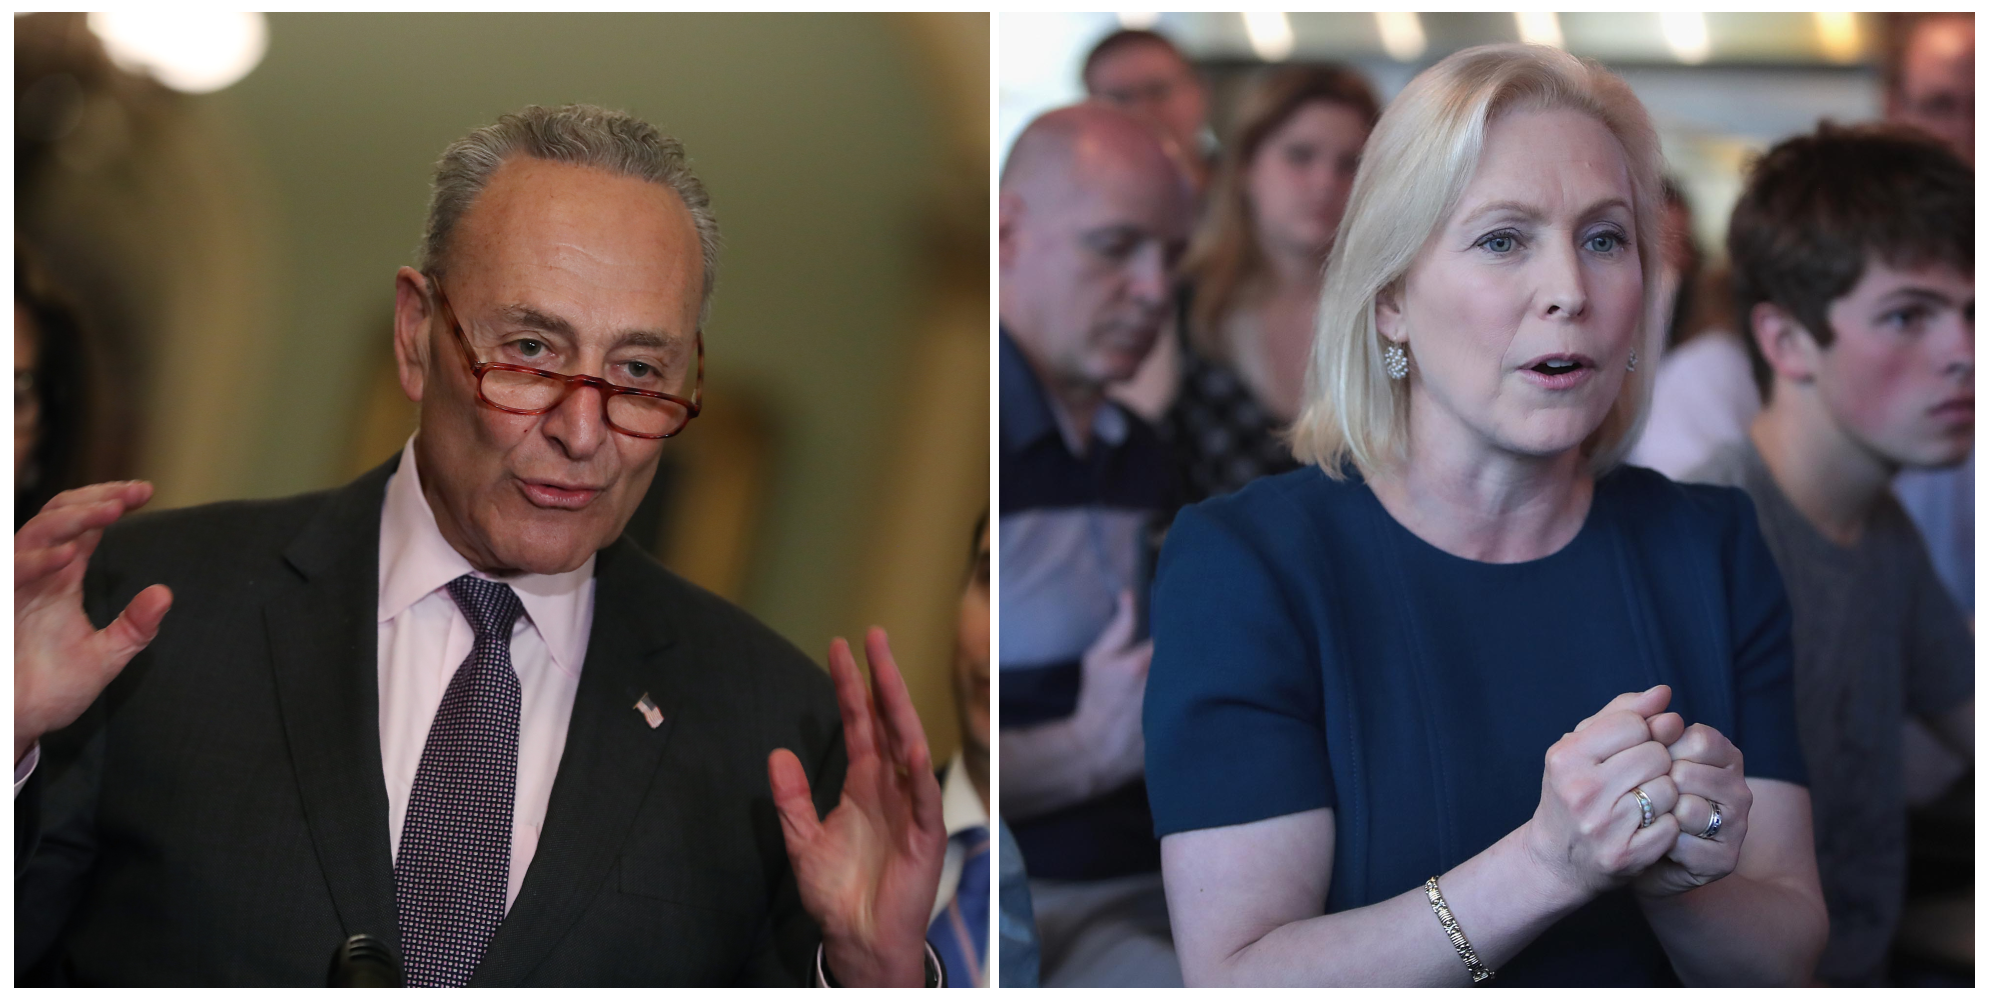 Senate Minority Leader Chuck Schumer and Senator Kirsten Gillibrand. (Getty Images)